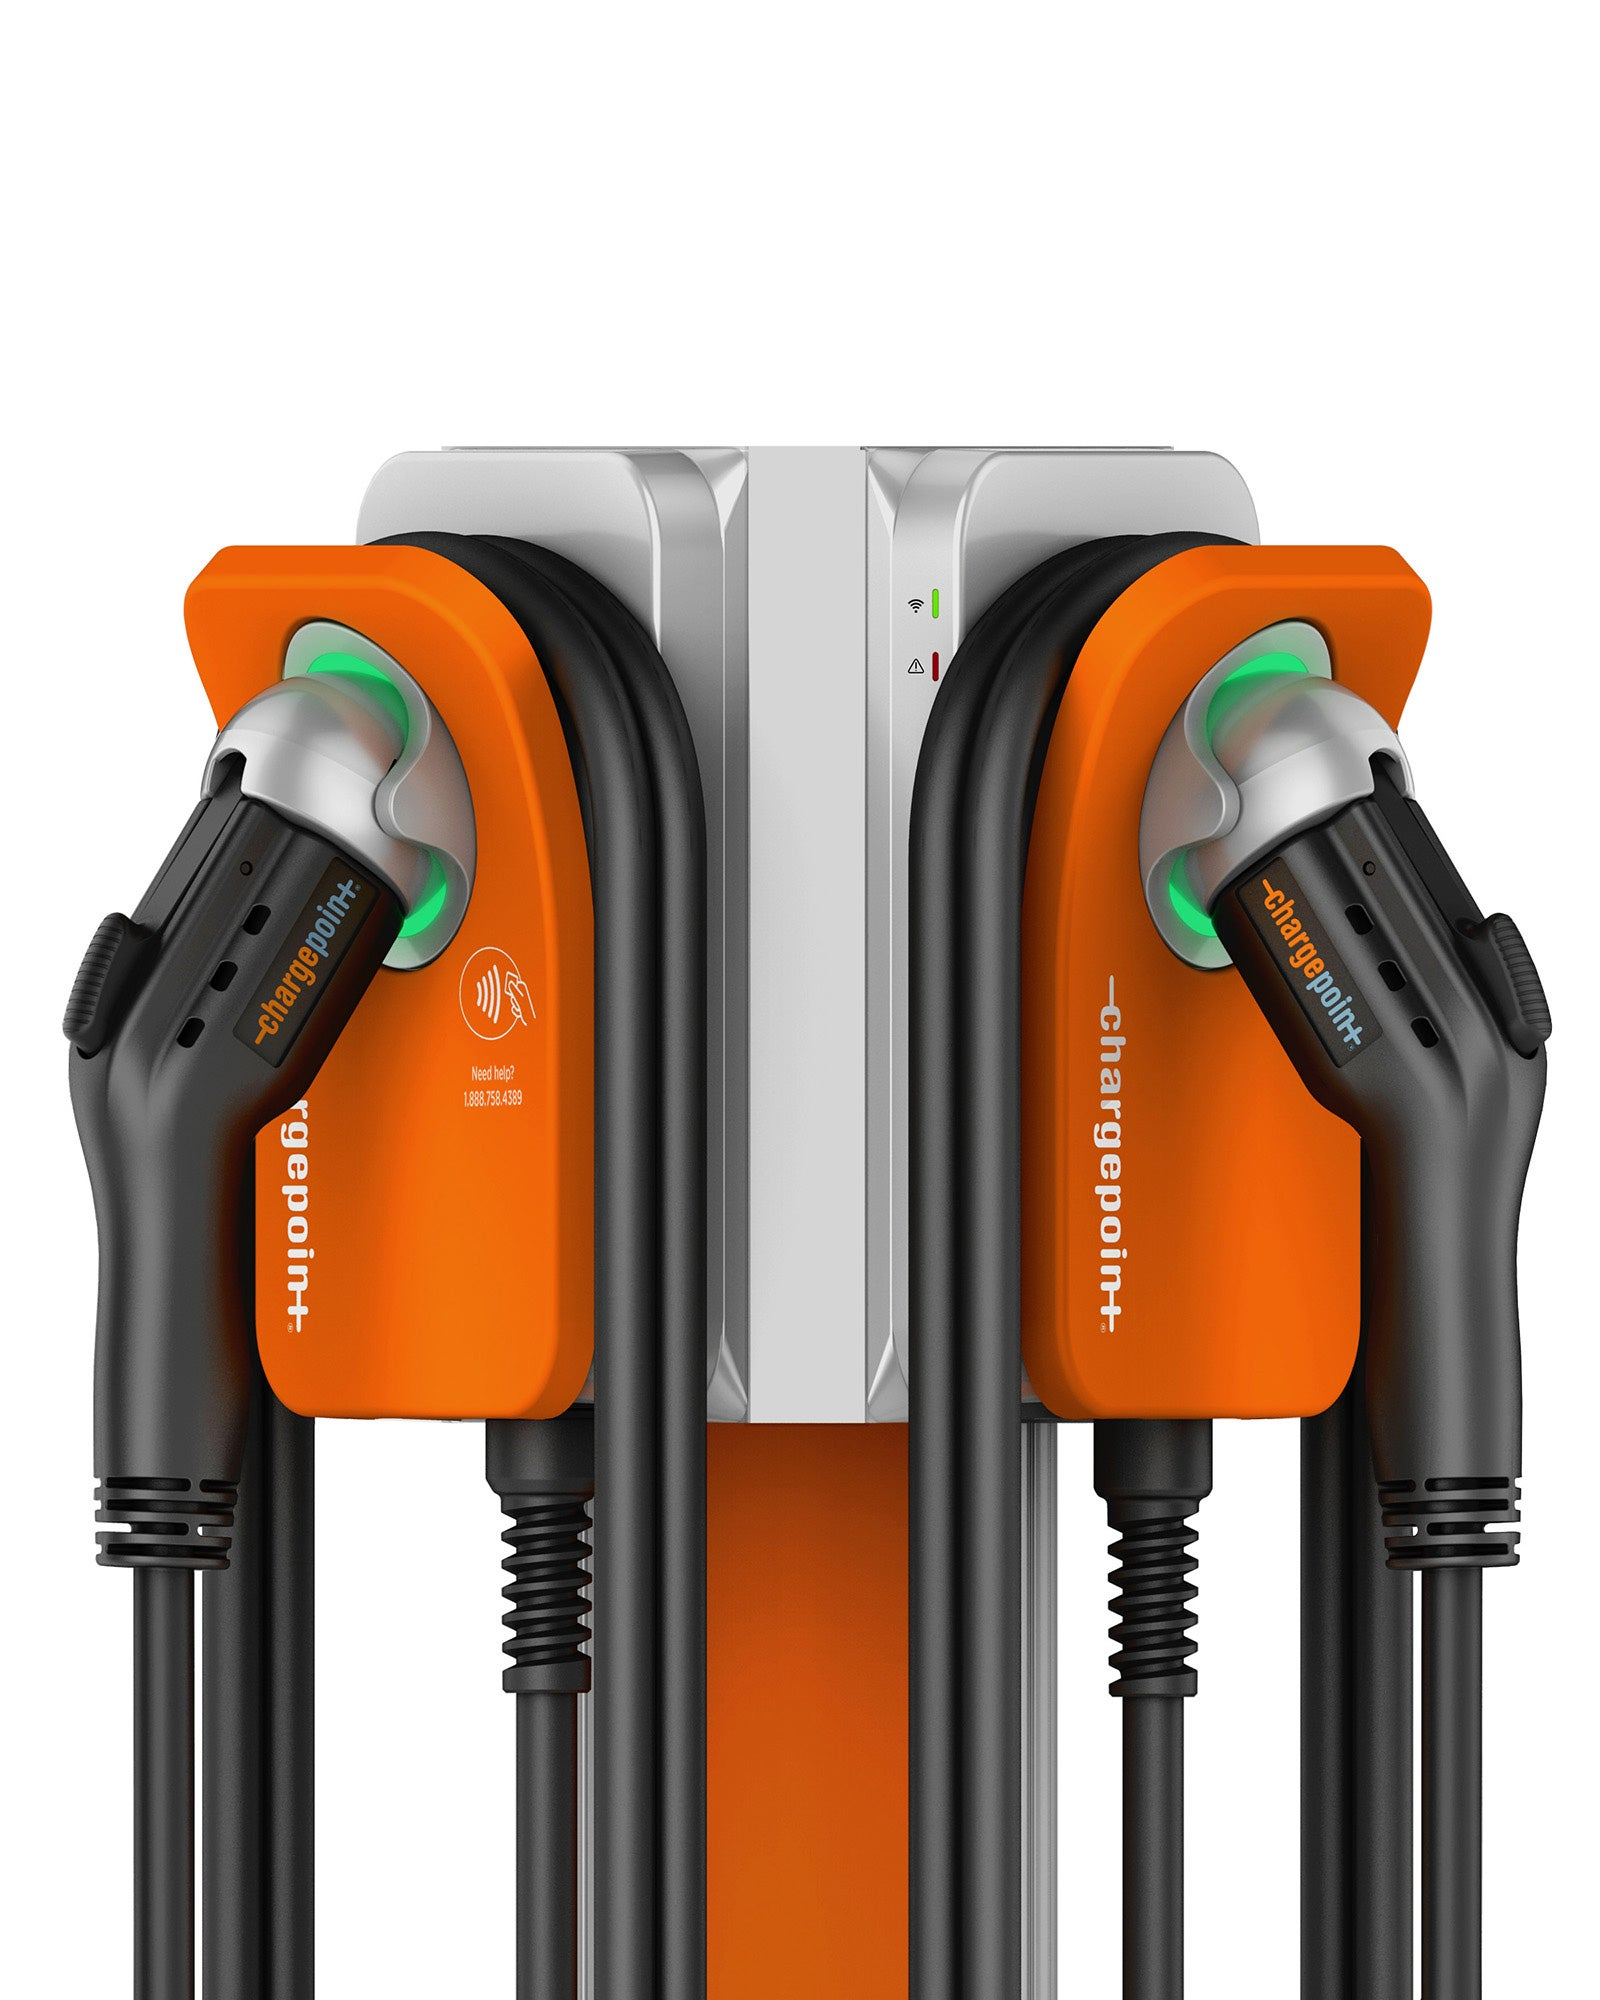 Cpf25 Family Chargepoint